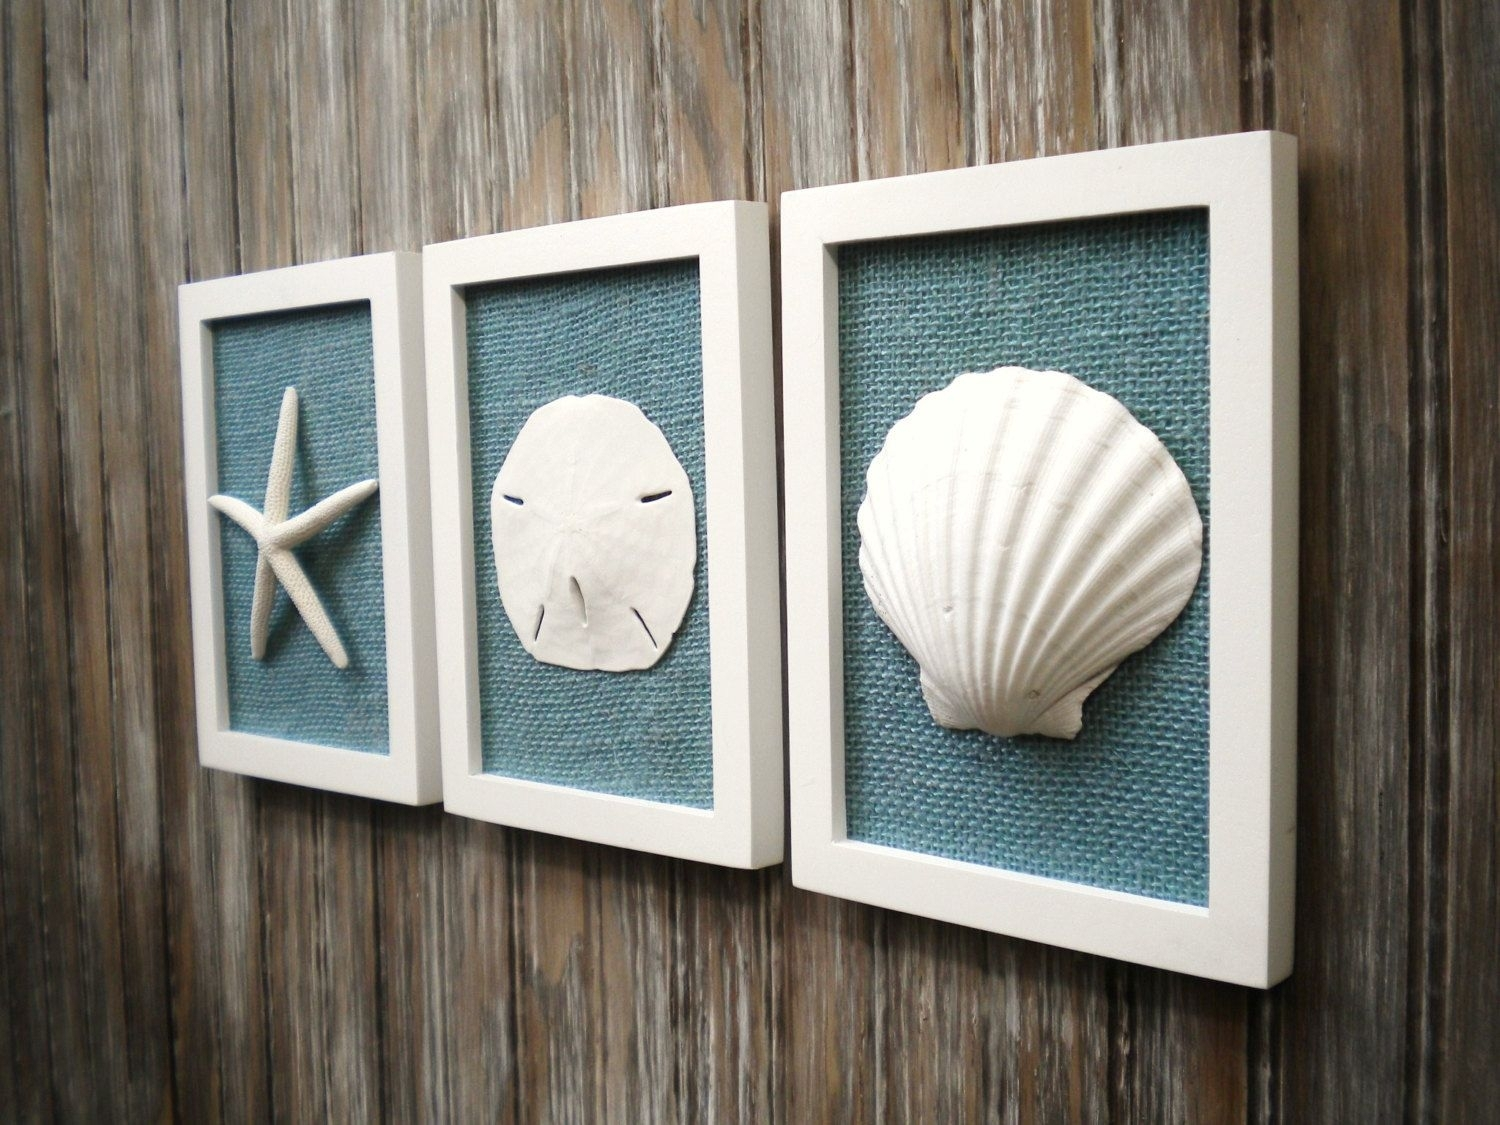 Cottage Chic Set Of Beach Decor, Wall Art, Nautical Decor, Coastal Inside Most Popular Nautical Wall Art (View 2 of 15)